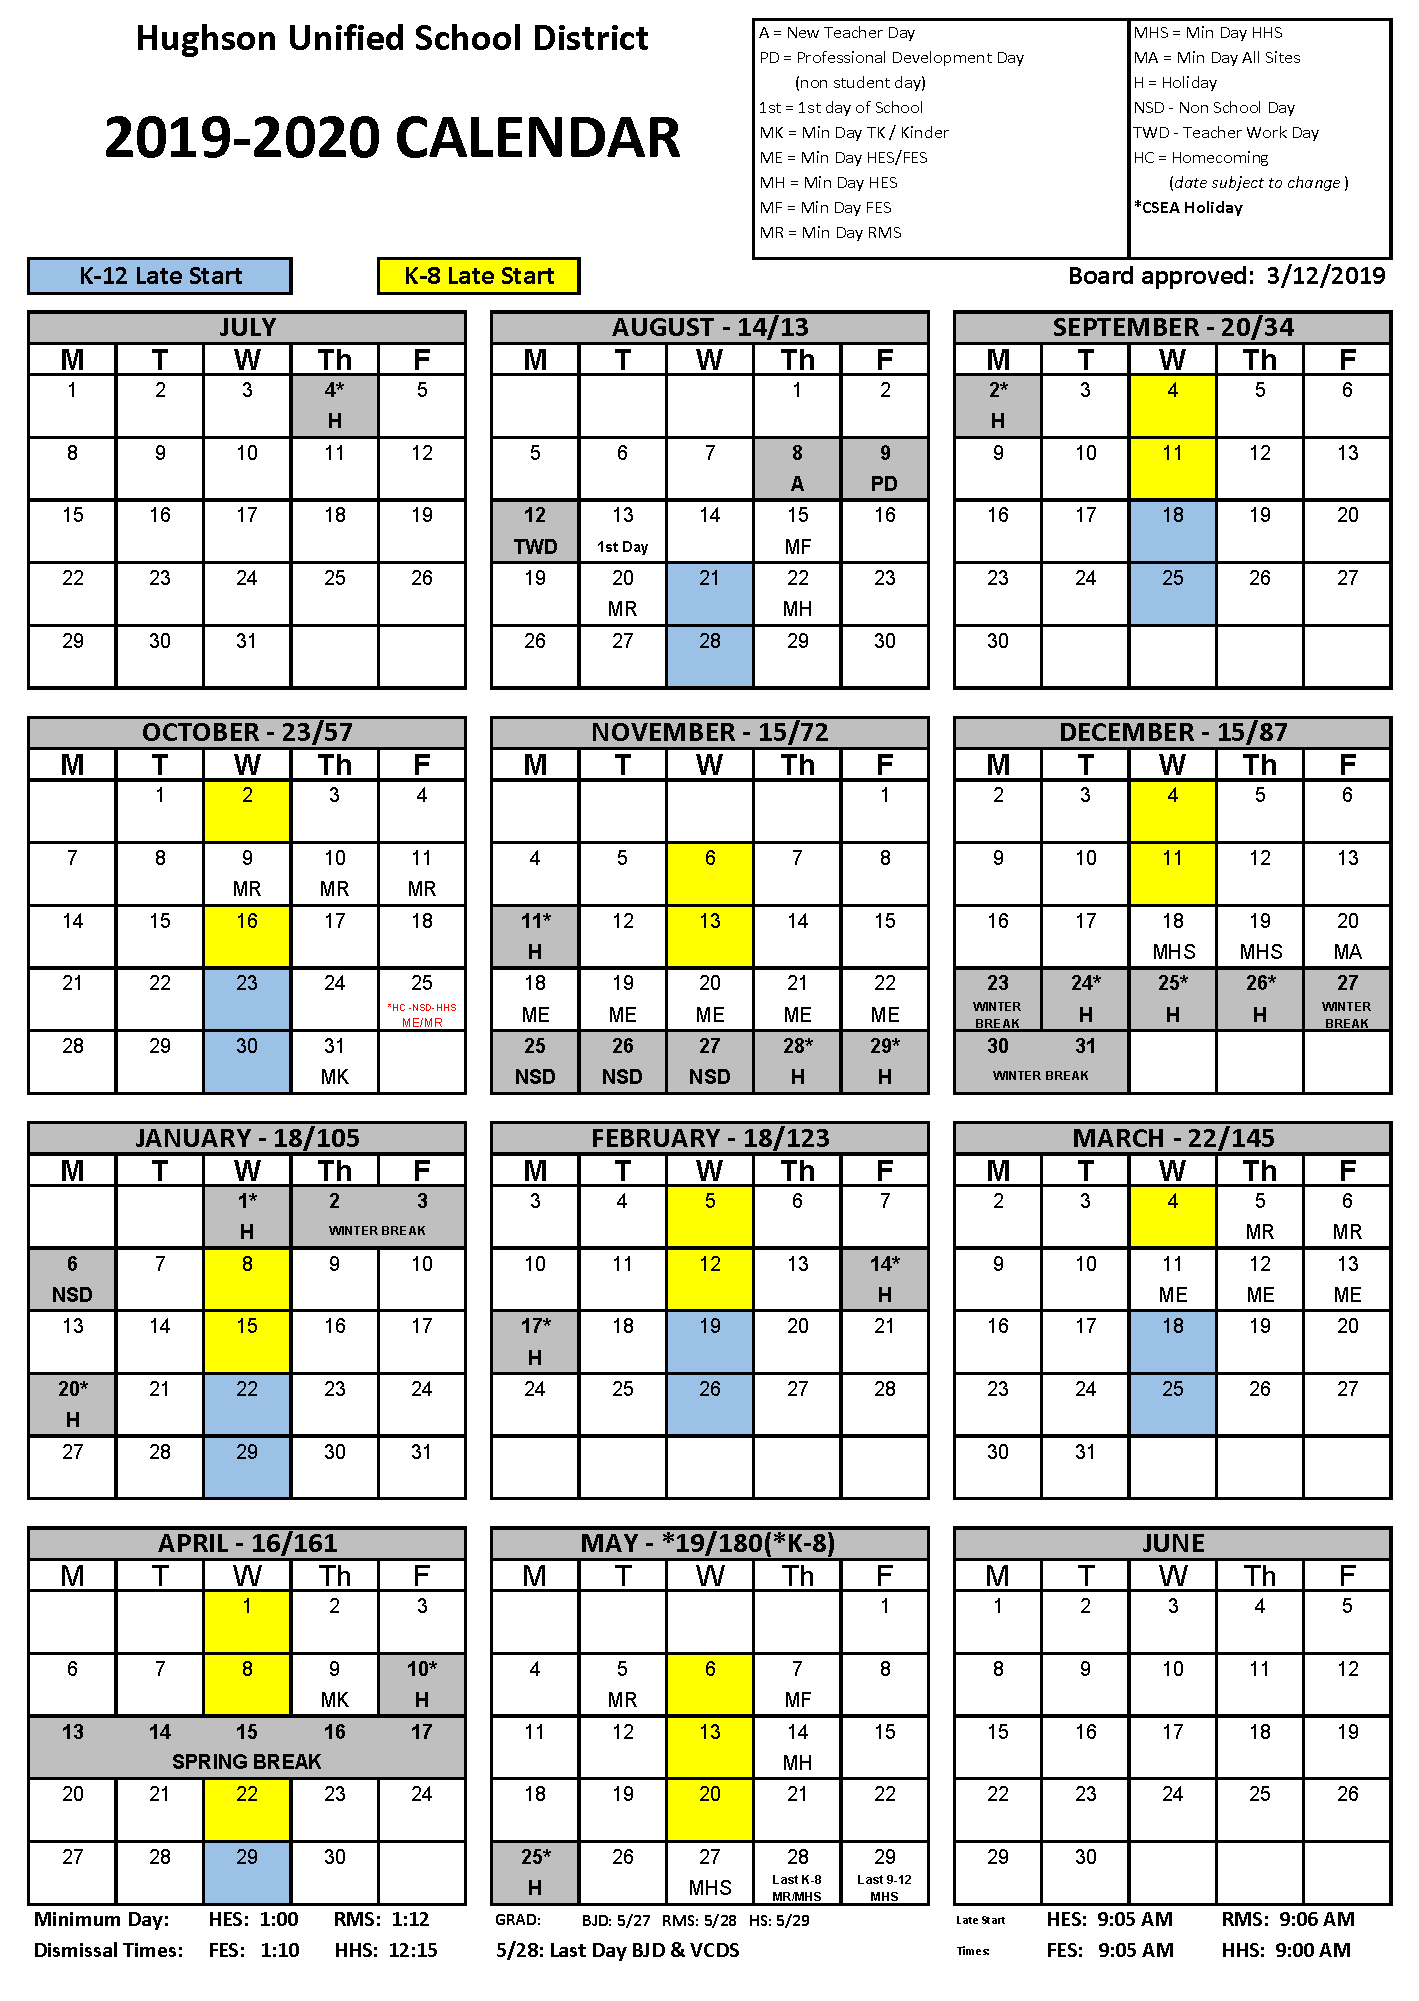 Calendar - Hughson Unified School District in Merced County Middle Schools Calendar